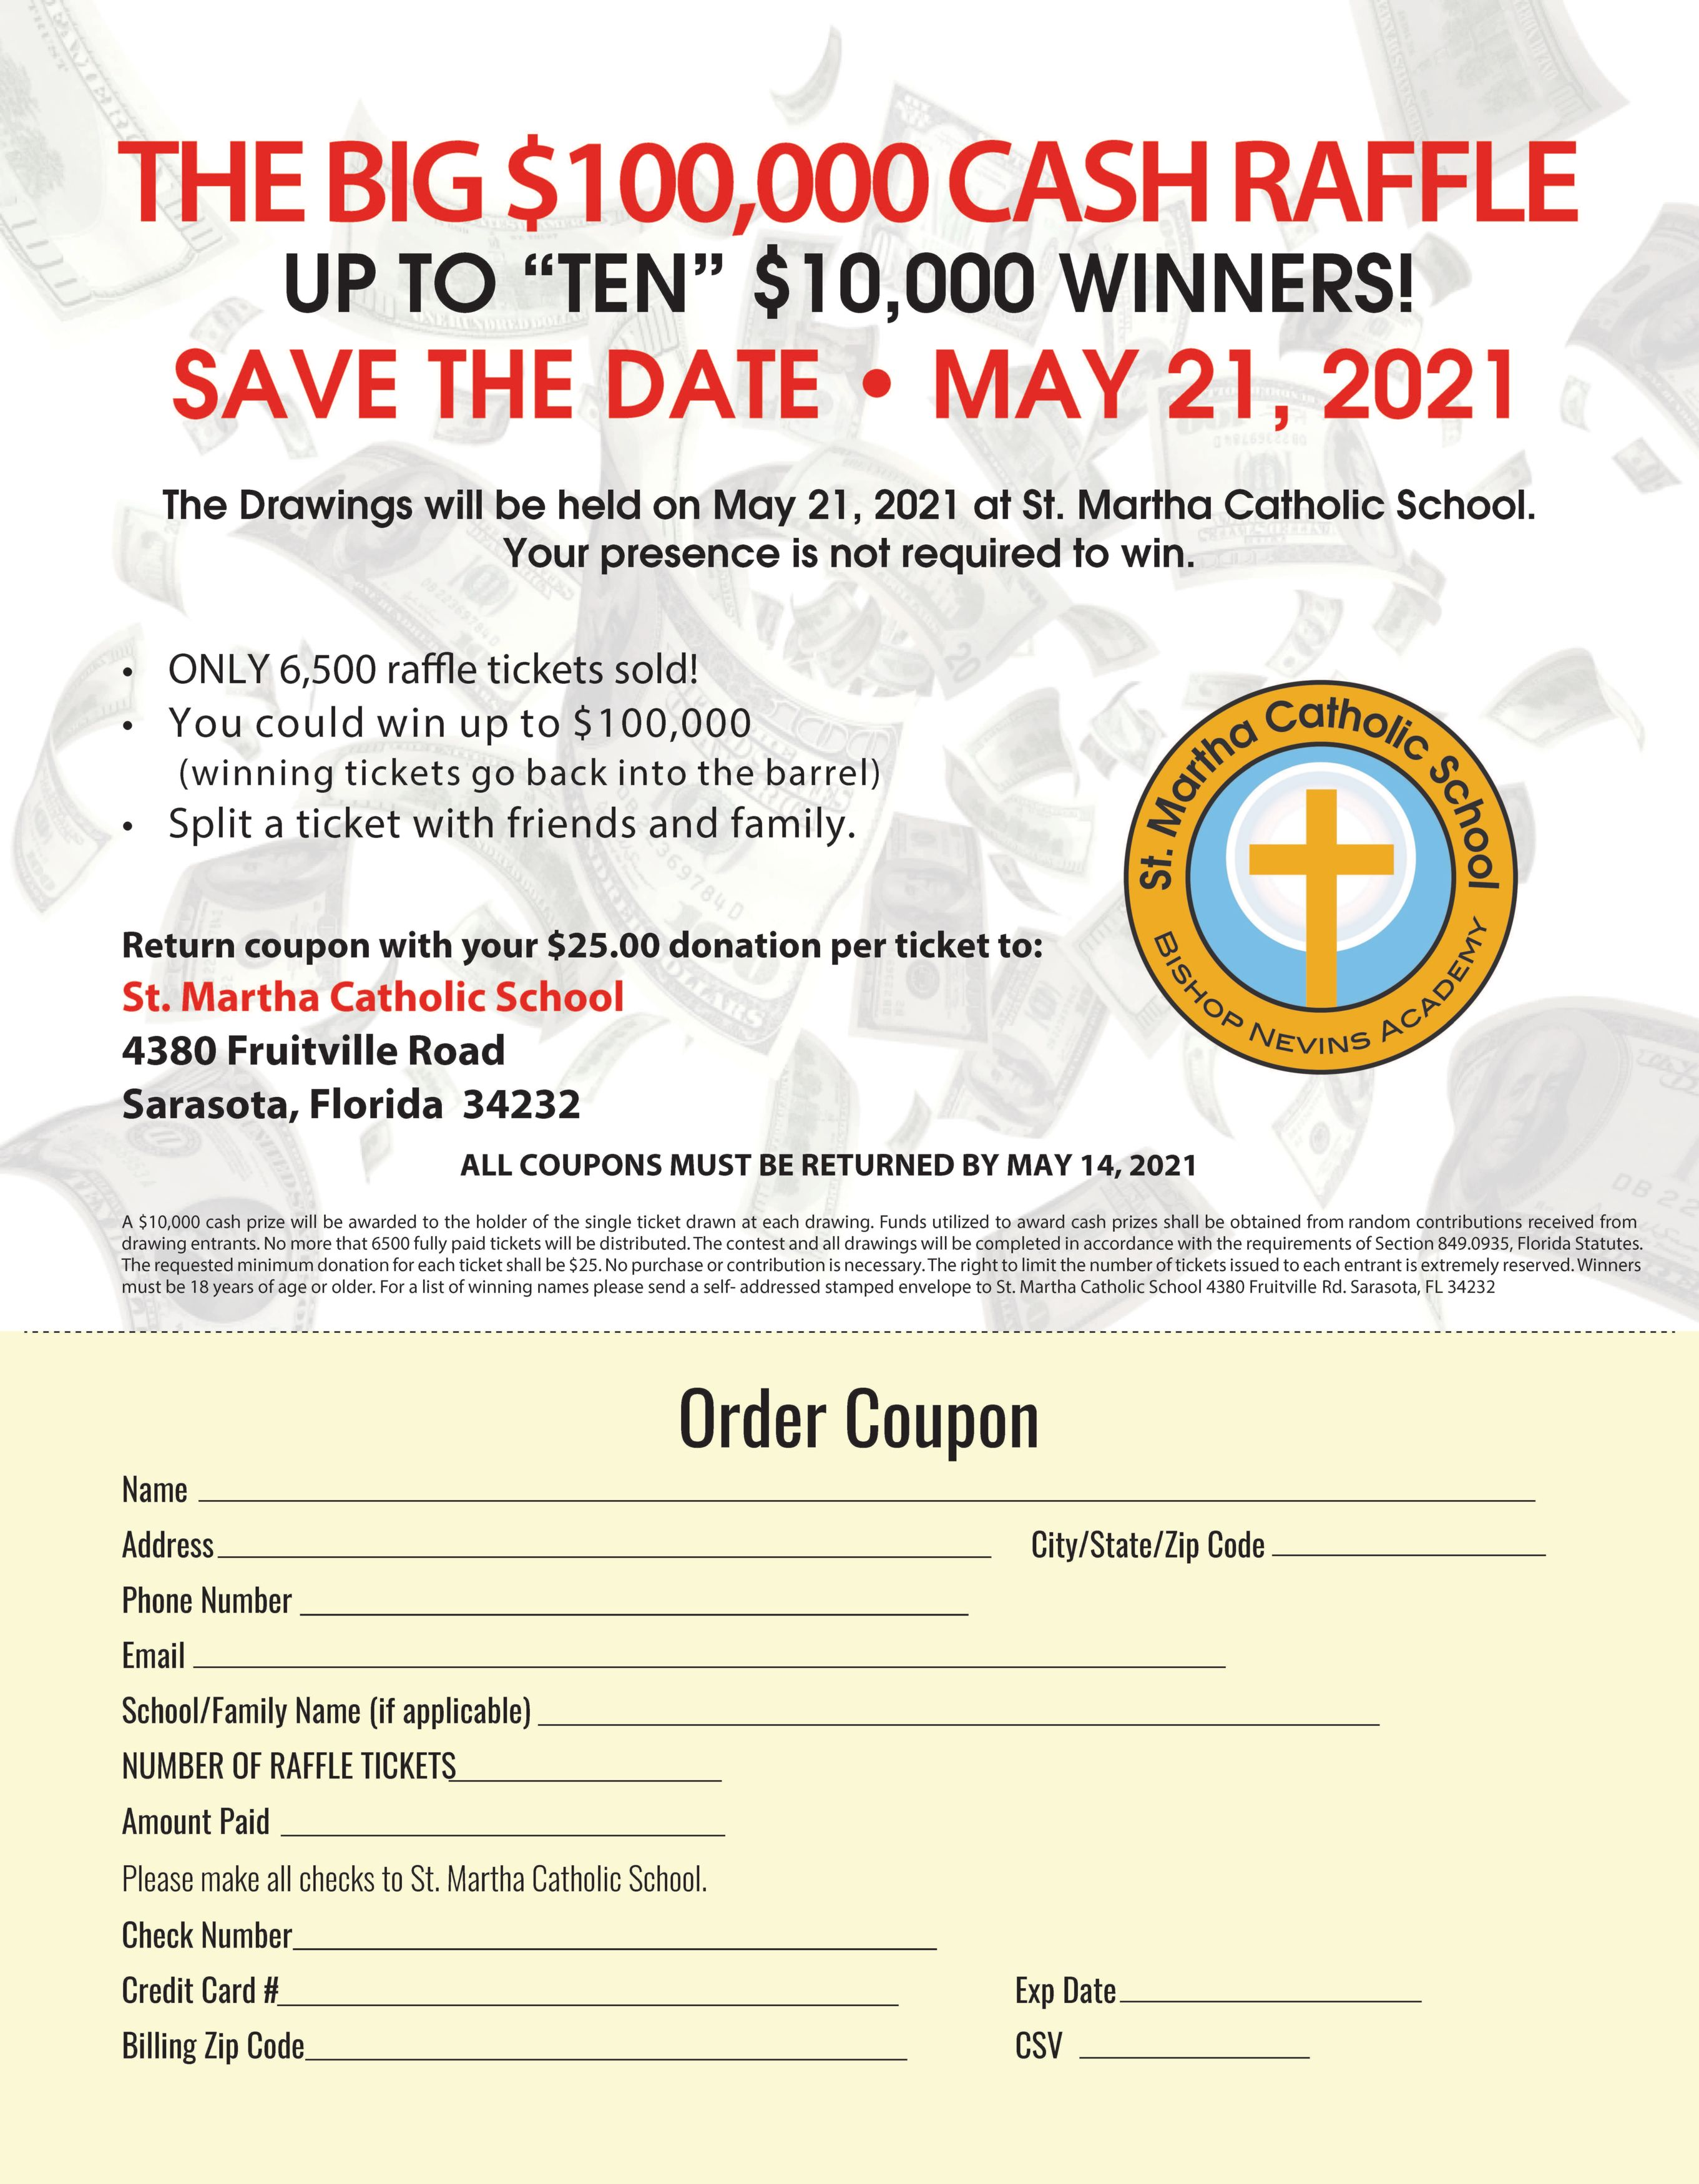 2021 Big Cash Raffle Flyer